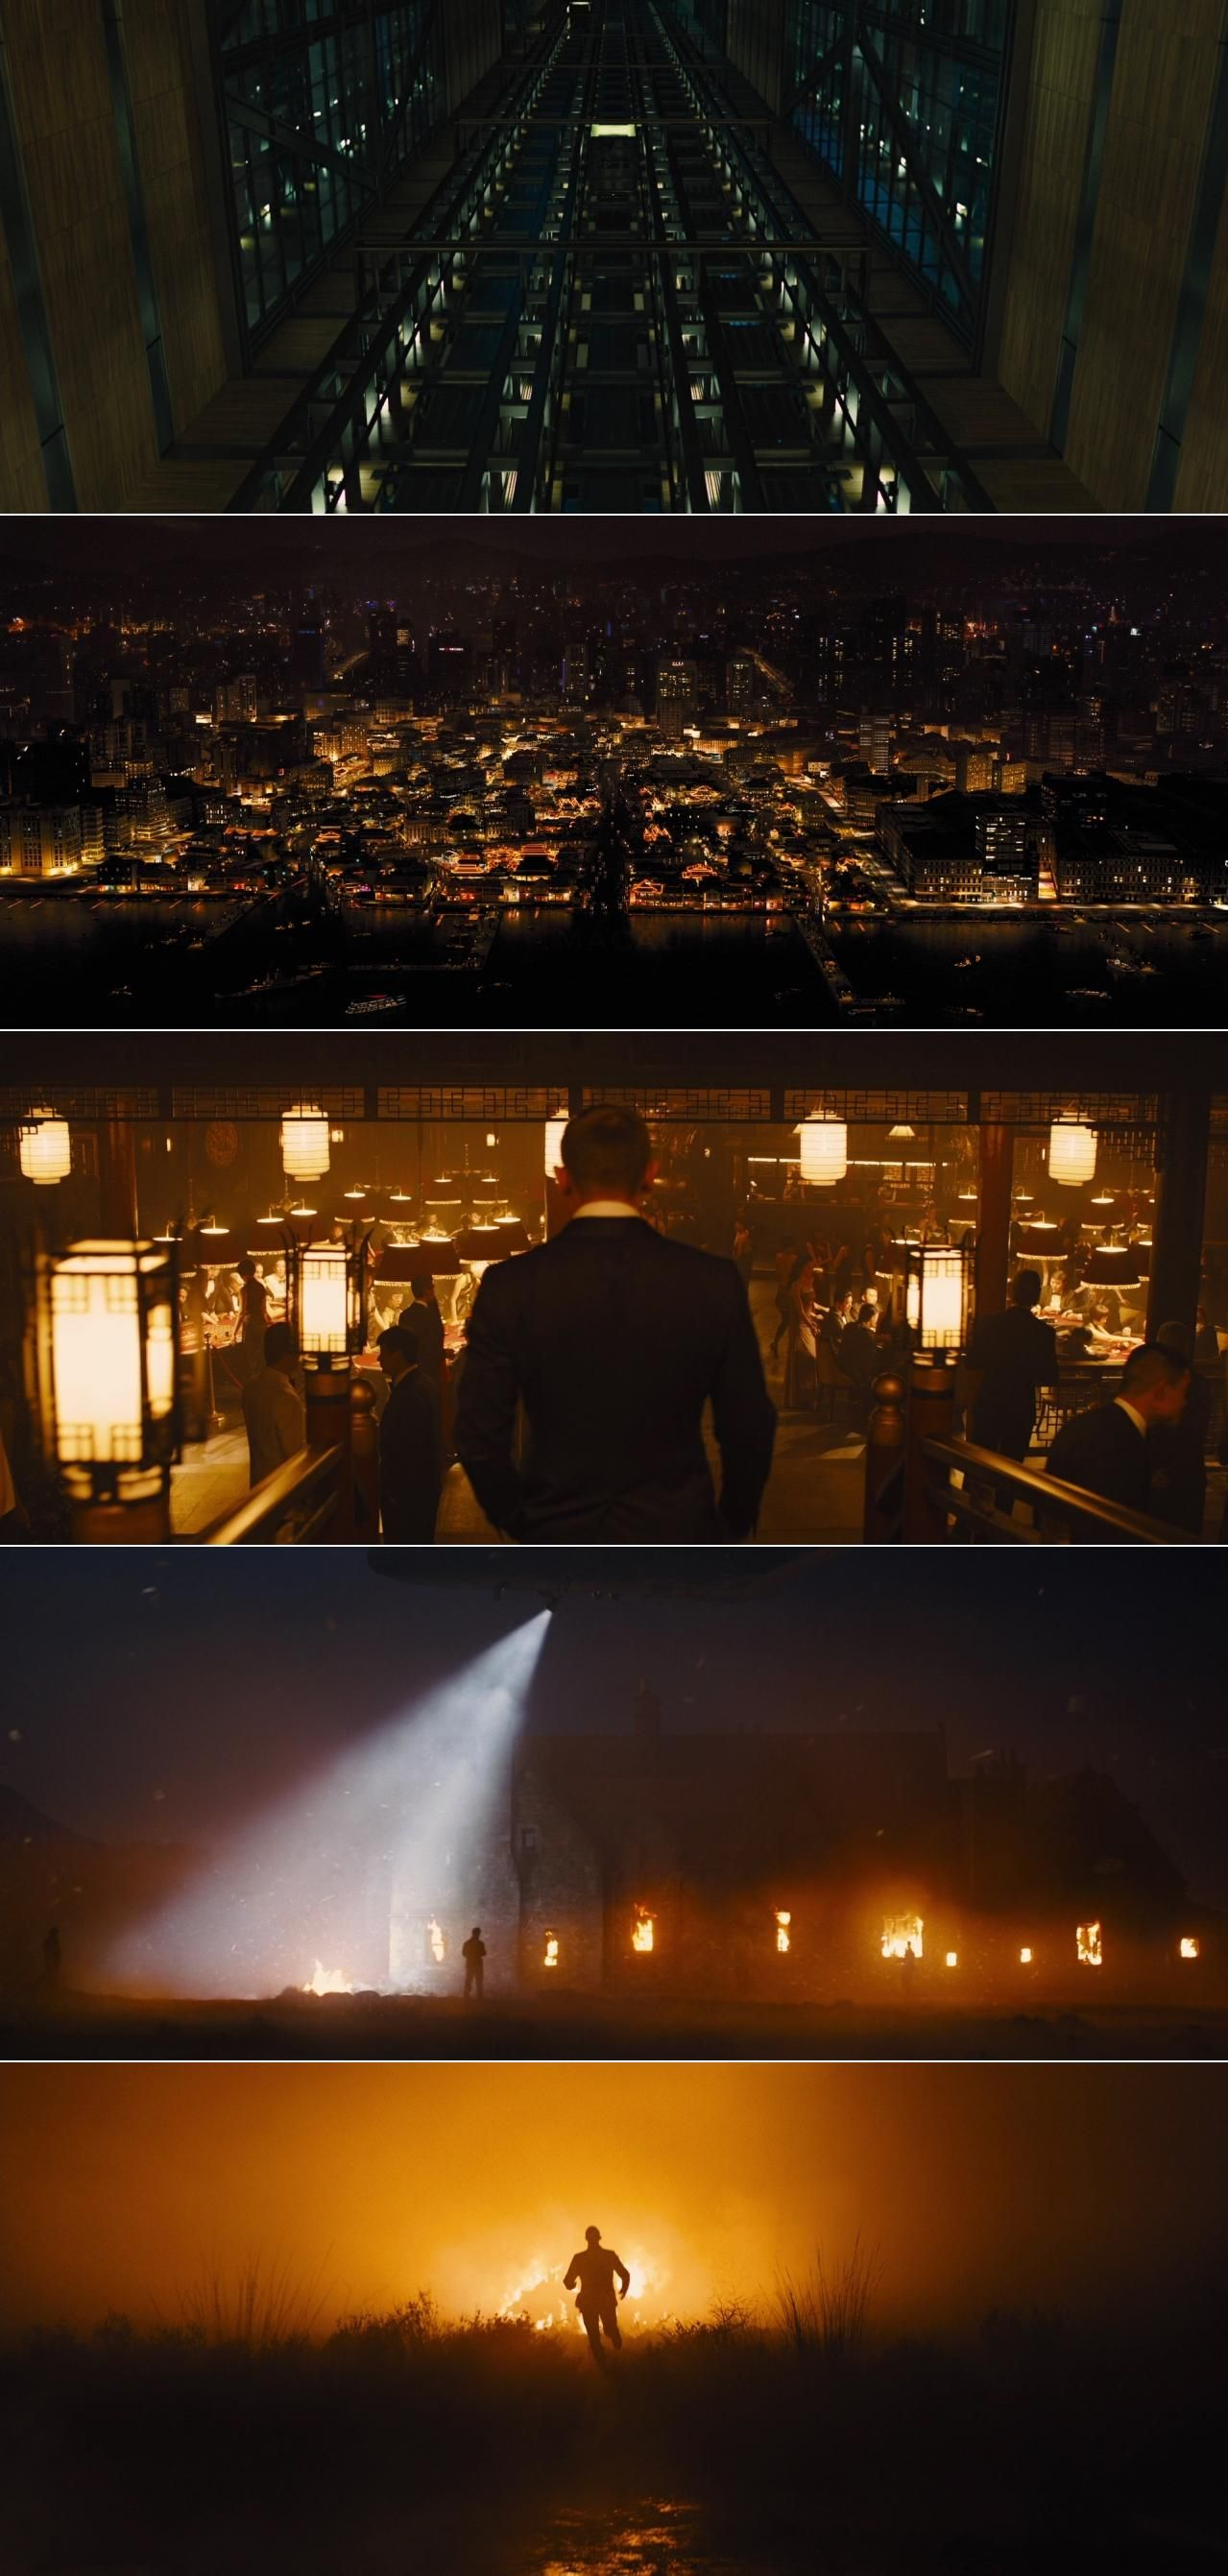 skyfall 2012 cinematography by roger deakins directed by sam